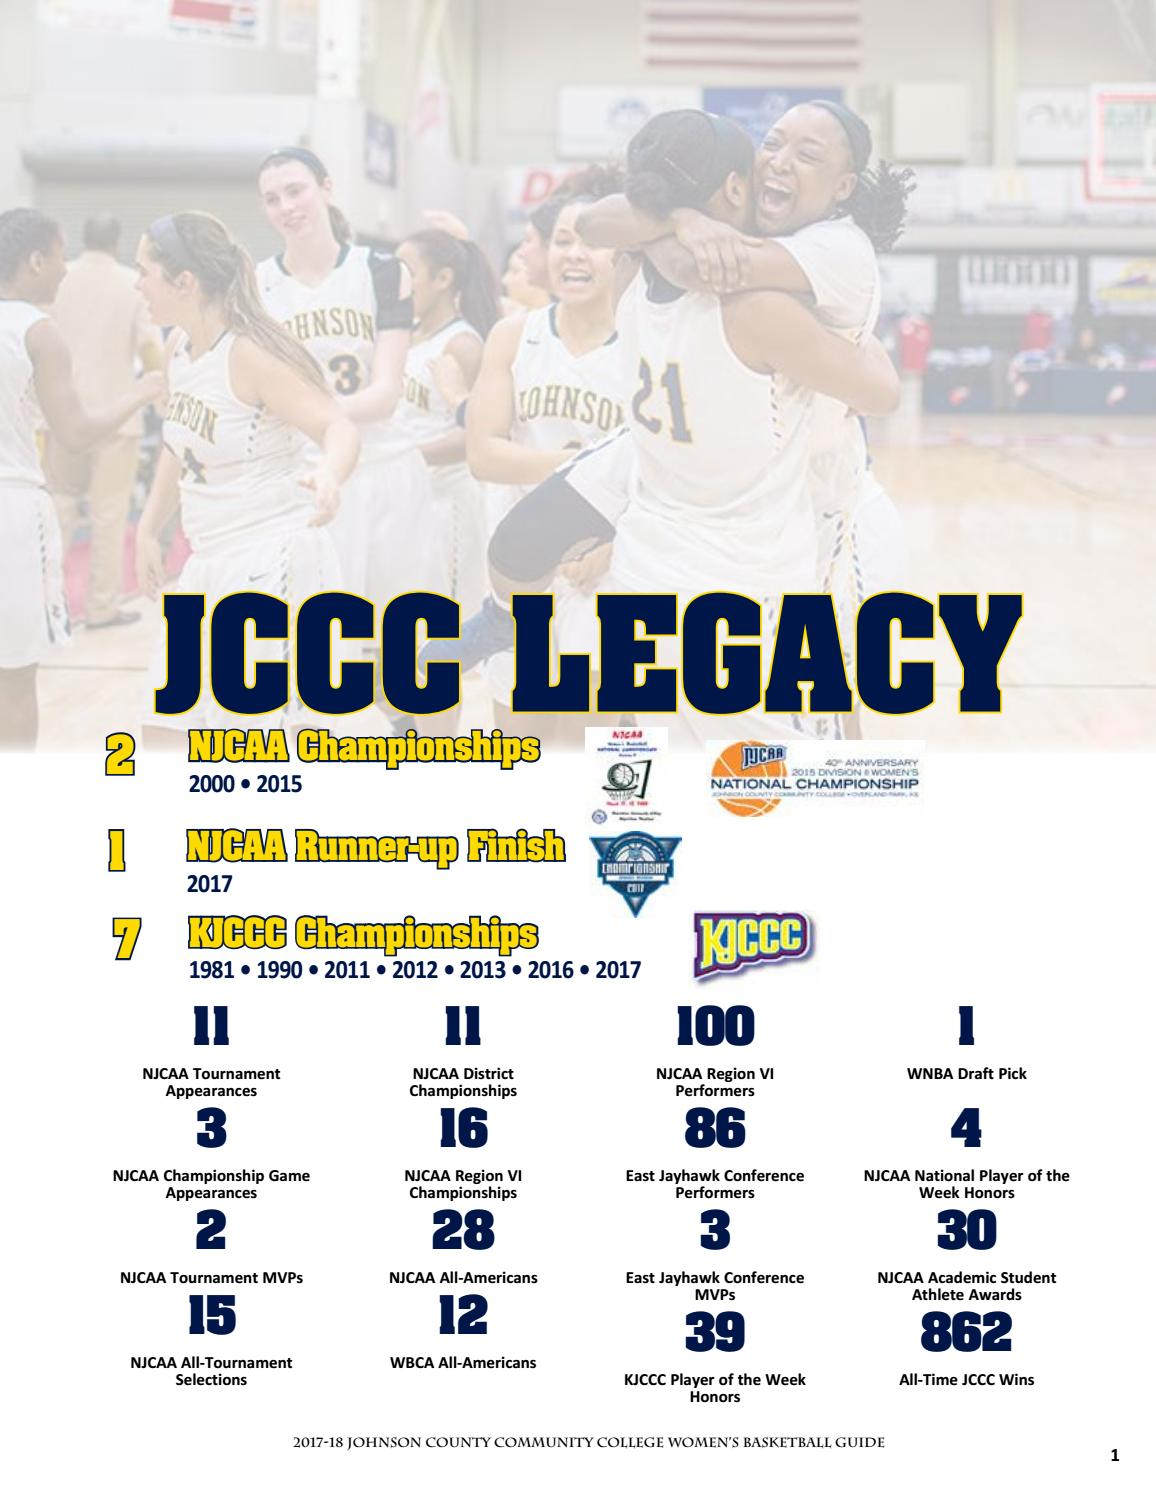 b3b8dd3fa4de 2018-19 JCCC Women s Basketball Guide by Chris Gray - issuu